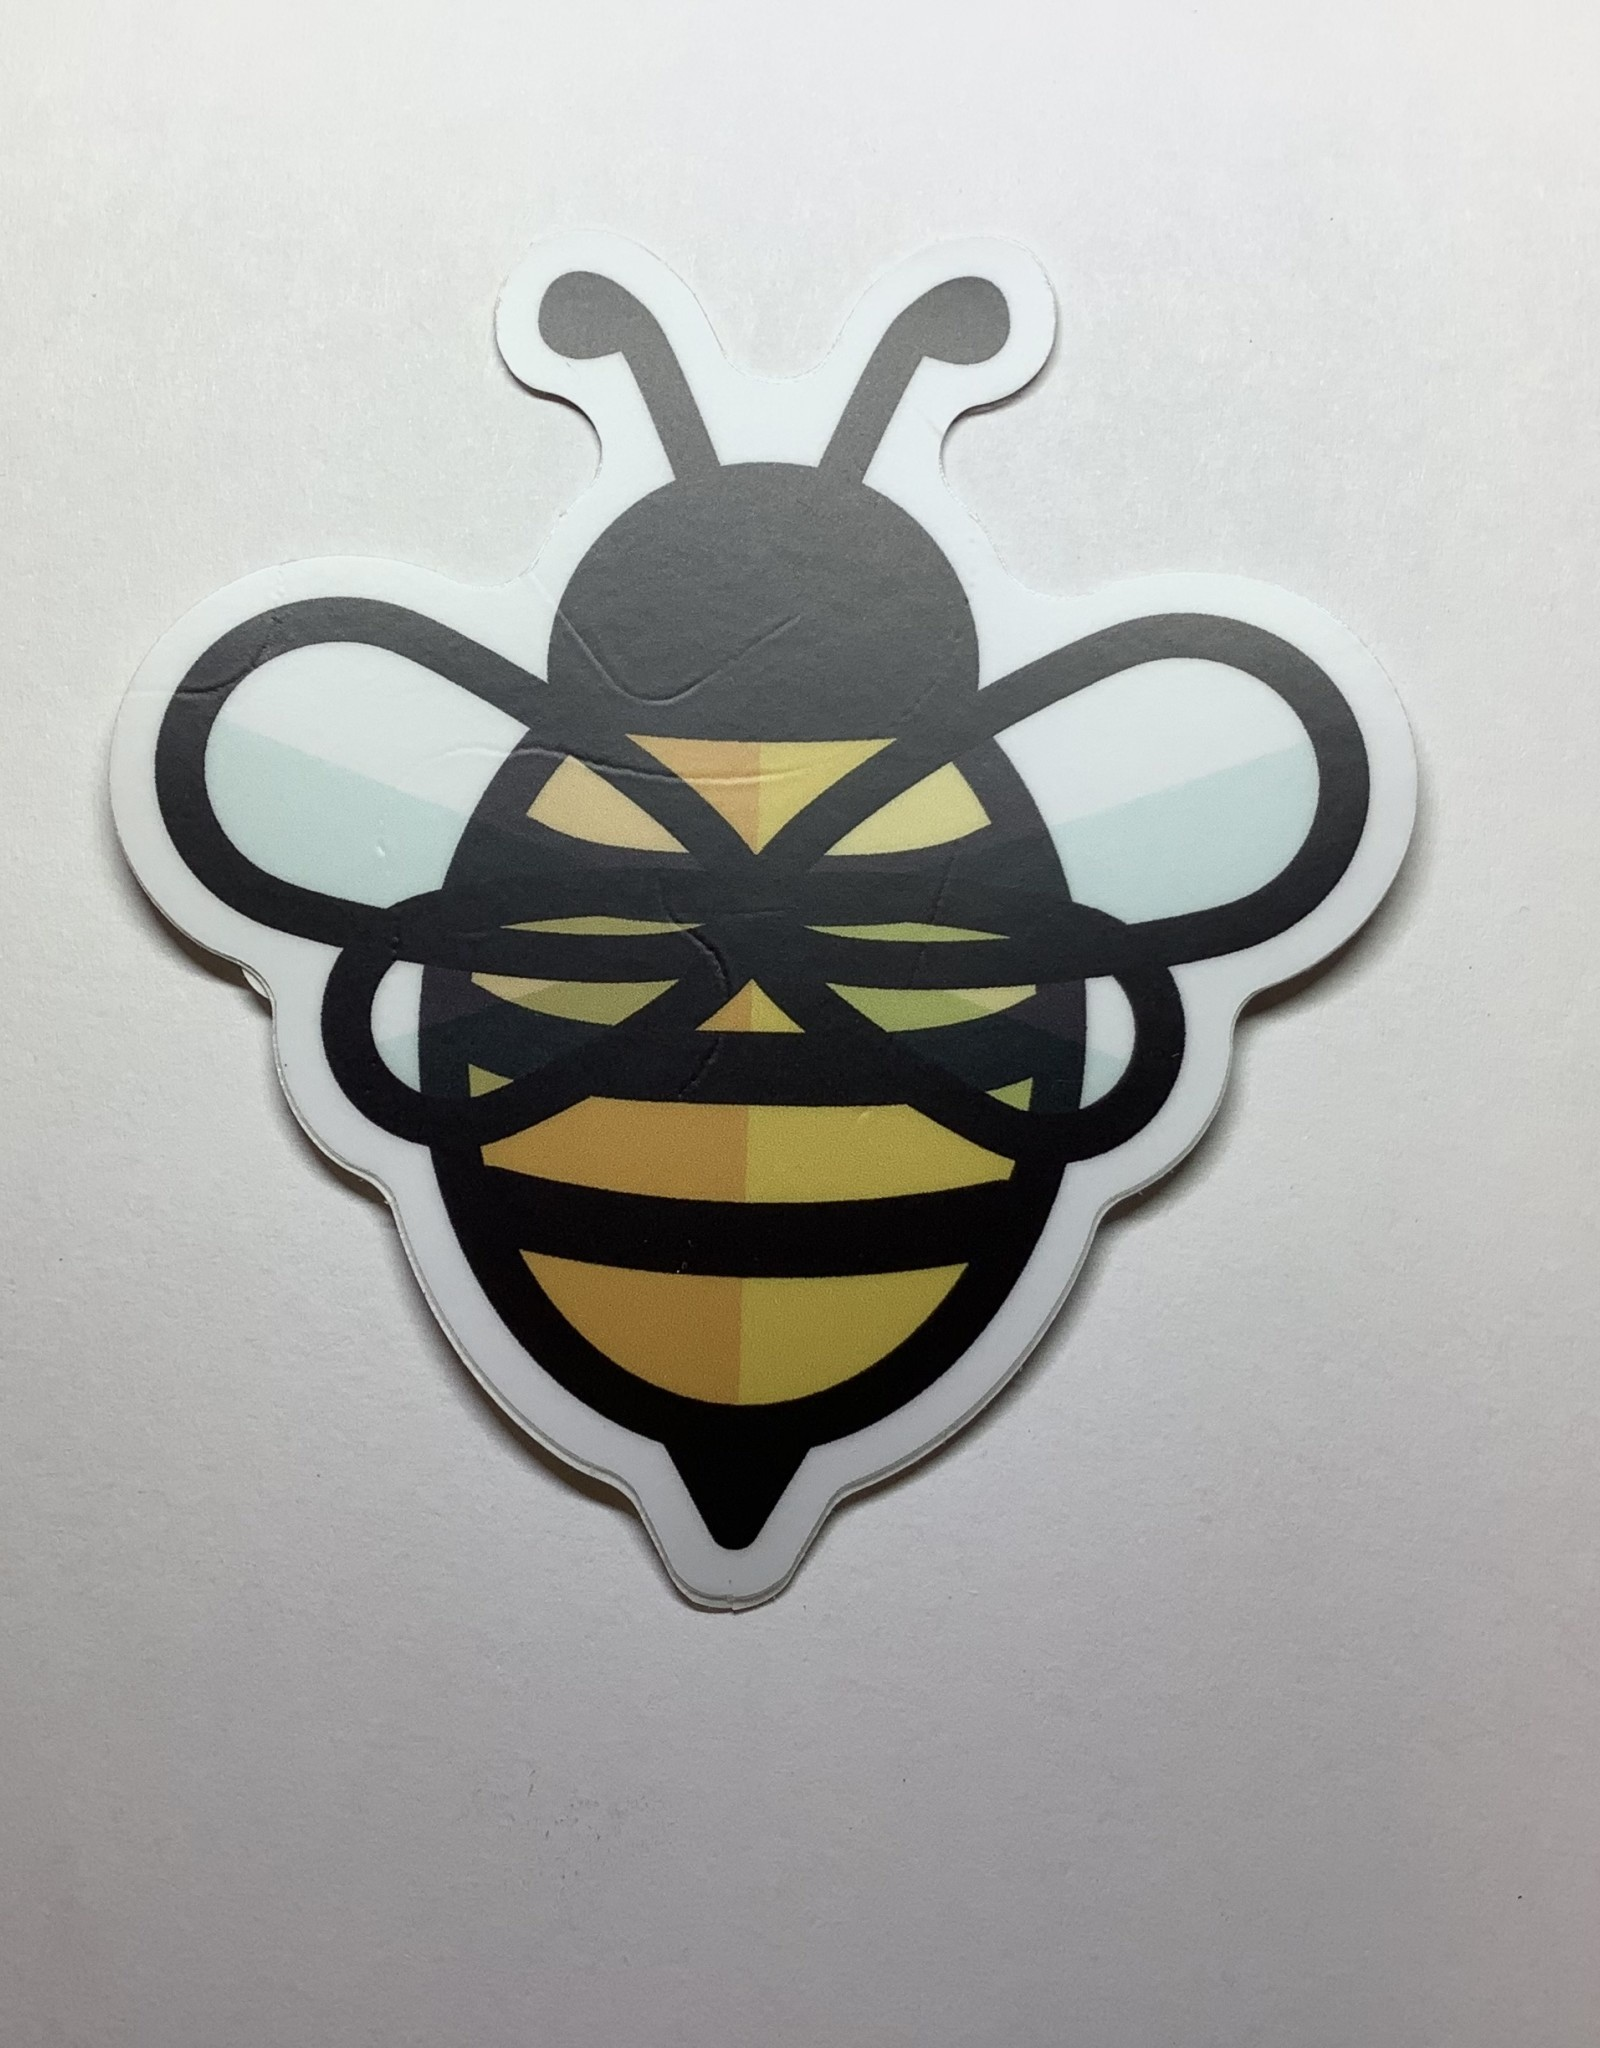 Stickers NW Bumble Bee Sticker